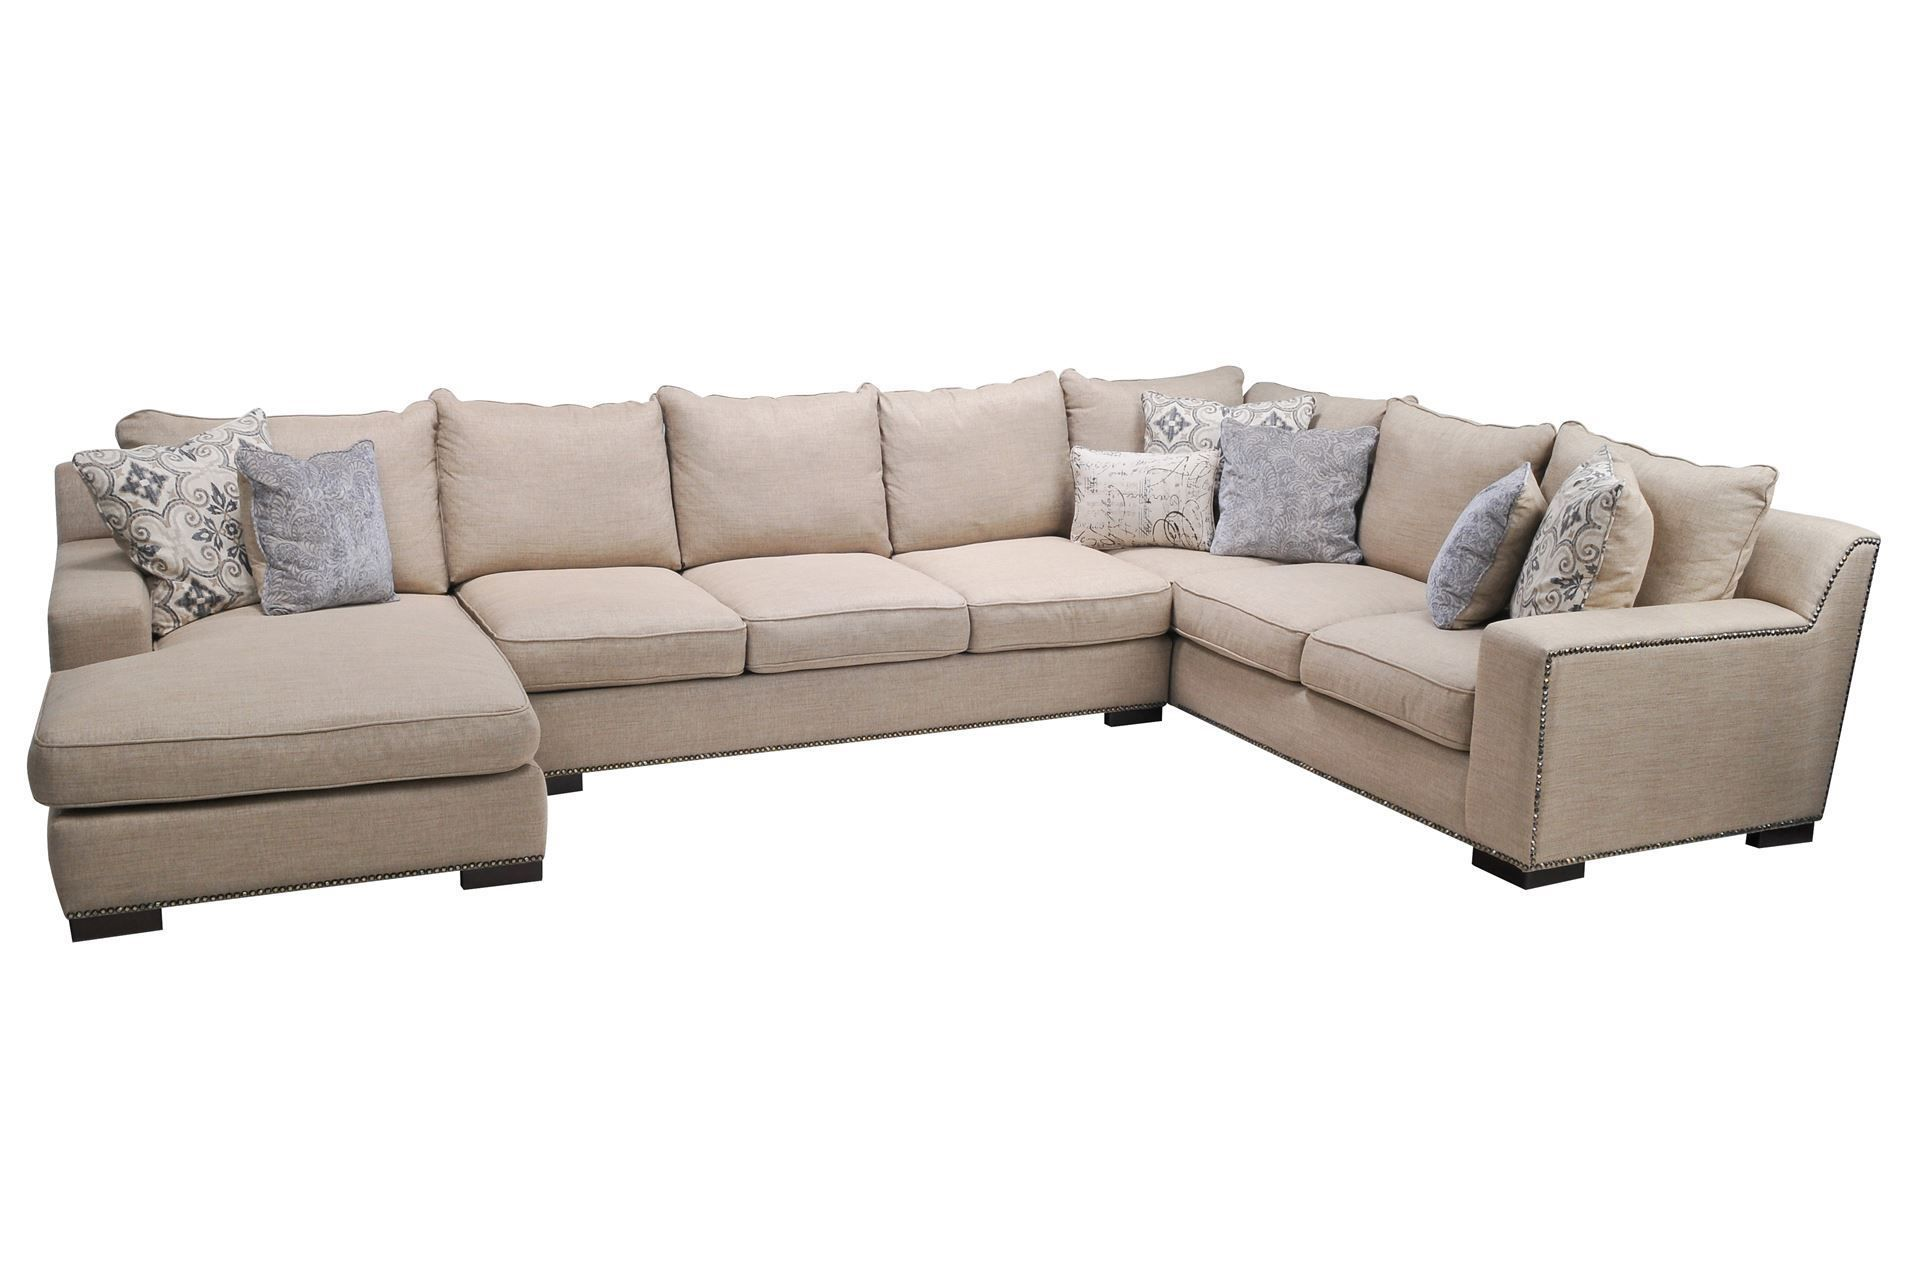 Sultan 3 Piece Sectional